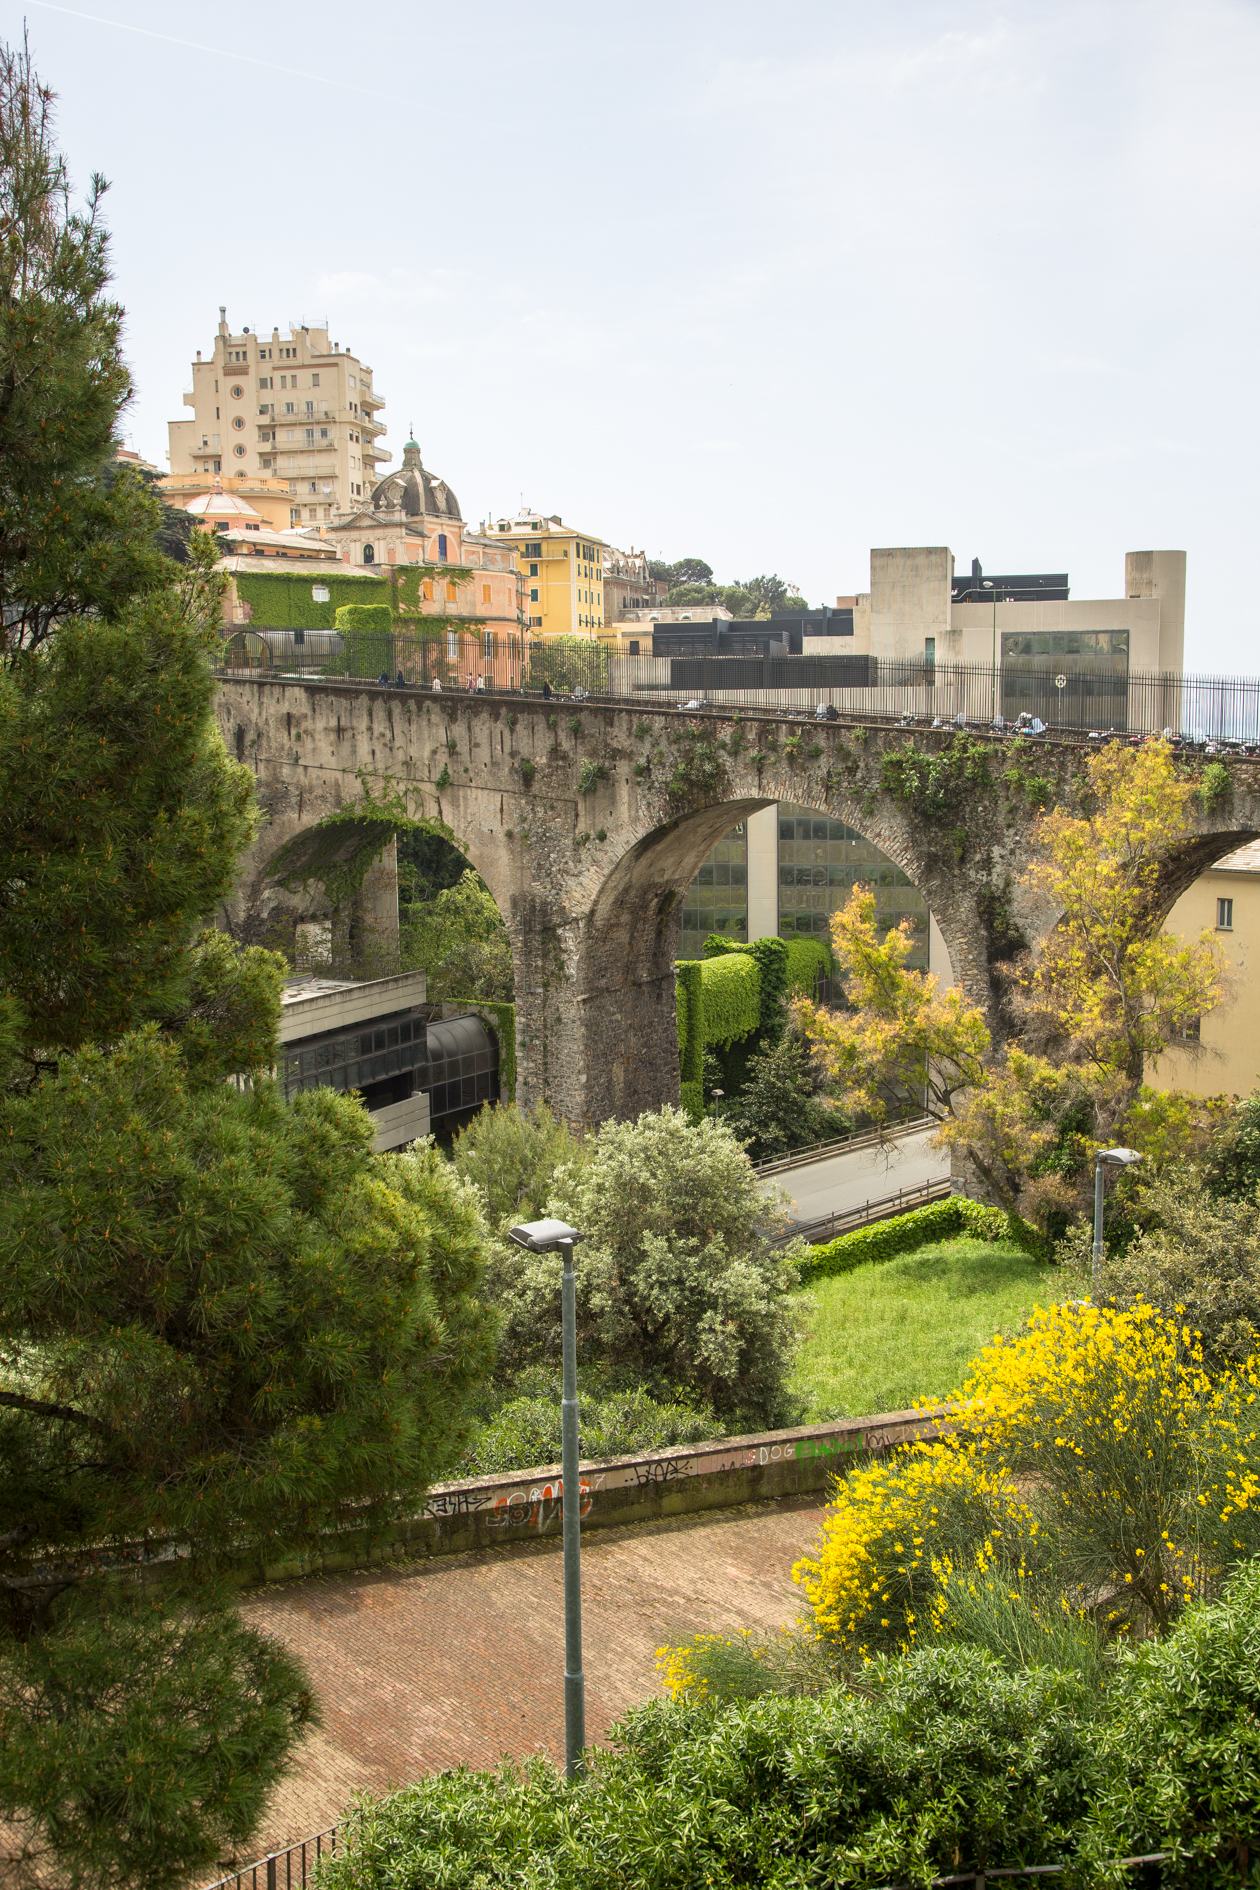 genua-viaduct-via-eugenia-ravasco